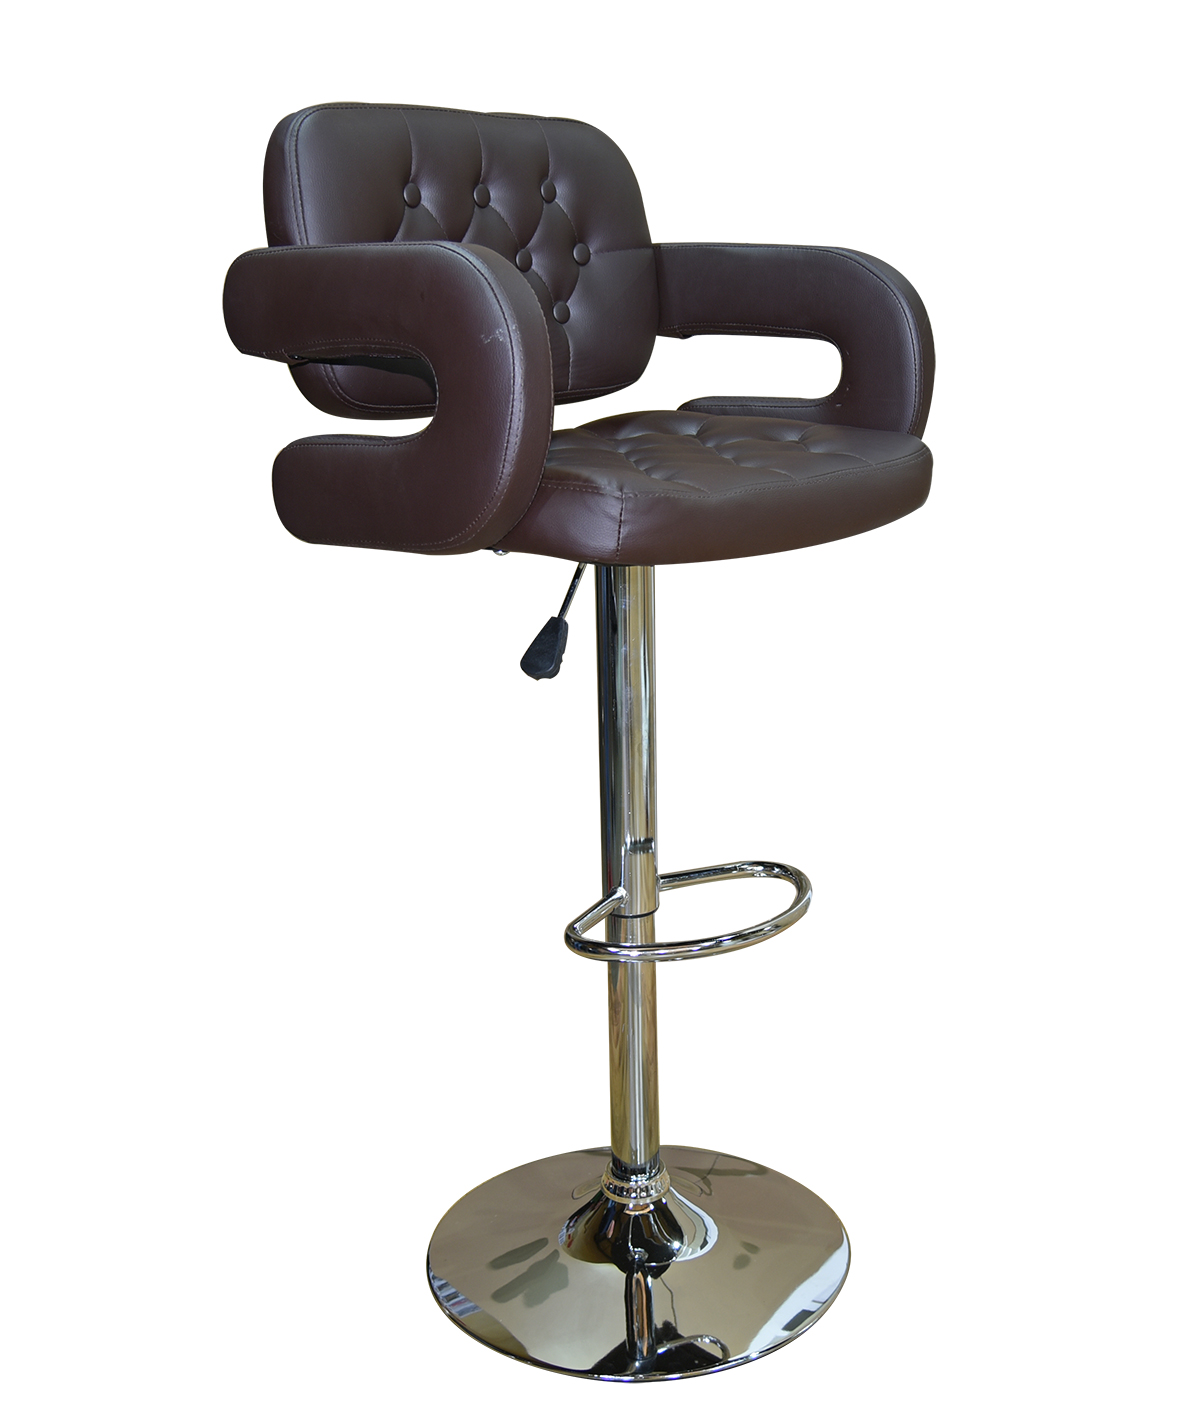 Bar Stool Leather Bar Stool Cheapest in South Africa : 823 Bar Stool side from www.discountdecor.co.za size 1181 x 1426 jpeg 330kB